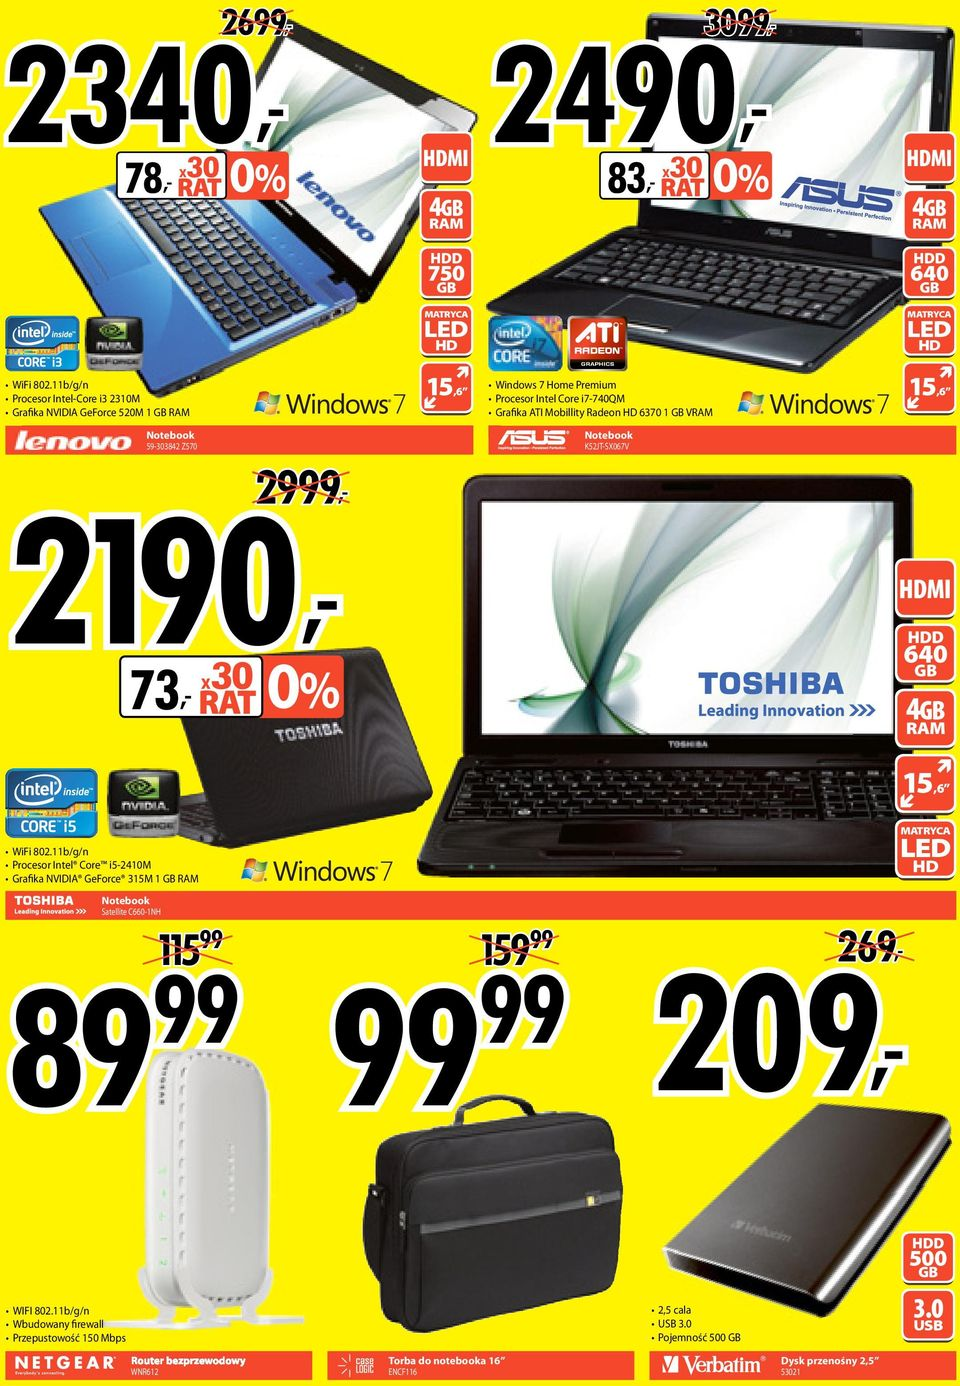 15,6 Notebook 59-303842 Z570 2190, 2999, Notebook K52JT-SX067V 73, x30 HDD 640 GB 4GB RM 15,6 WiFi 802.